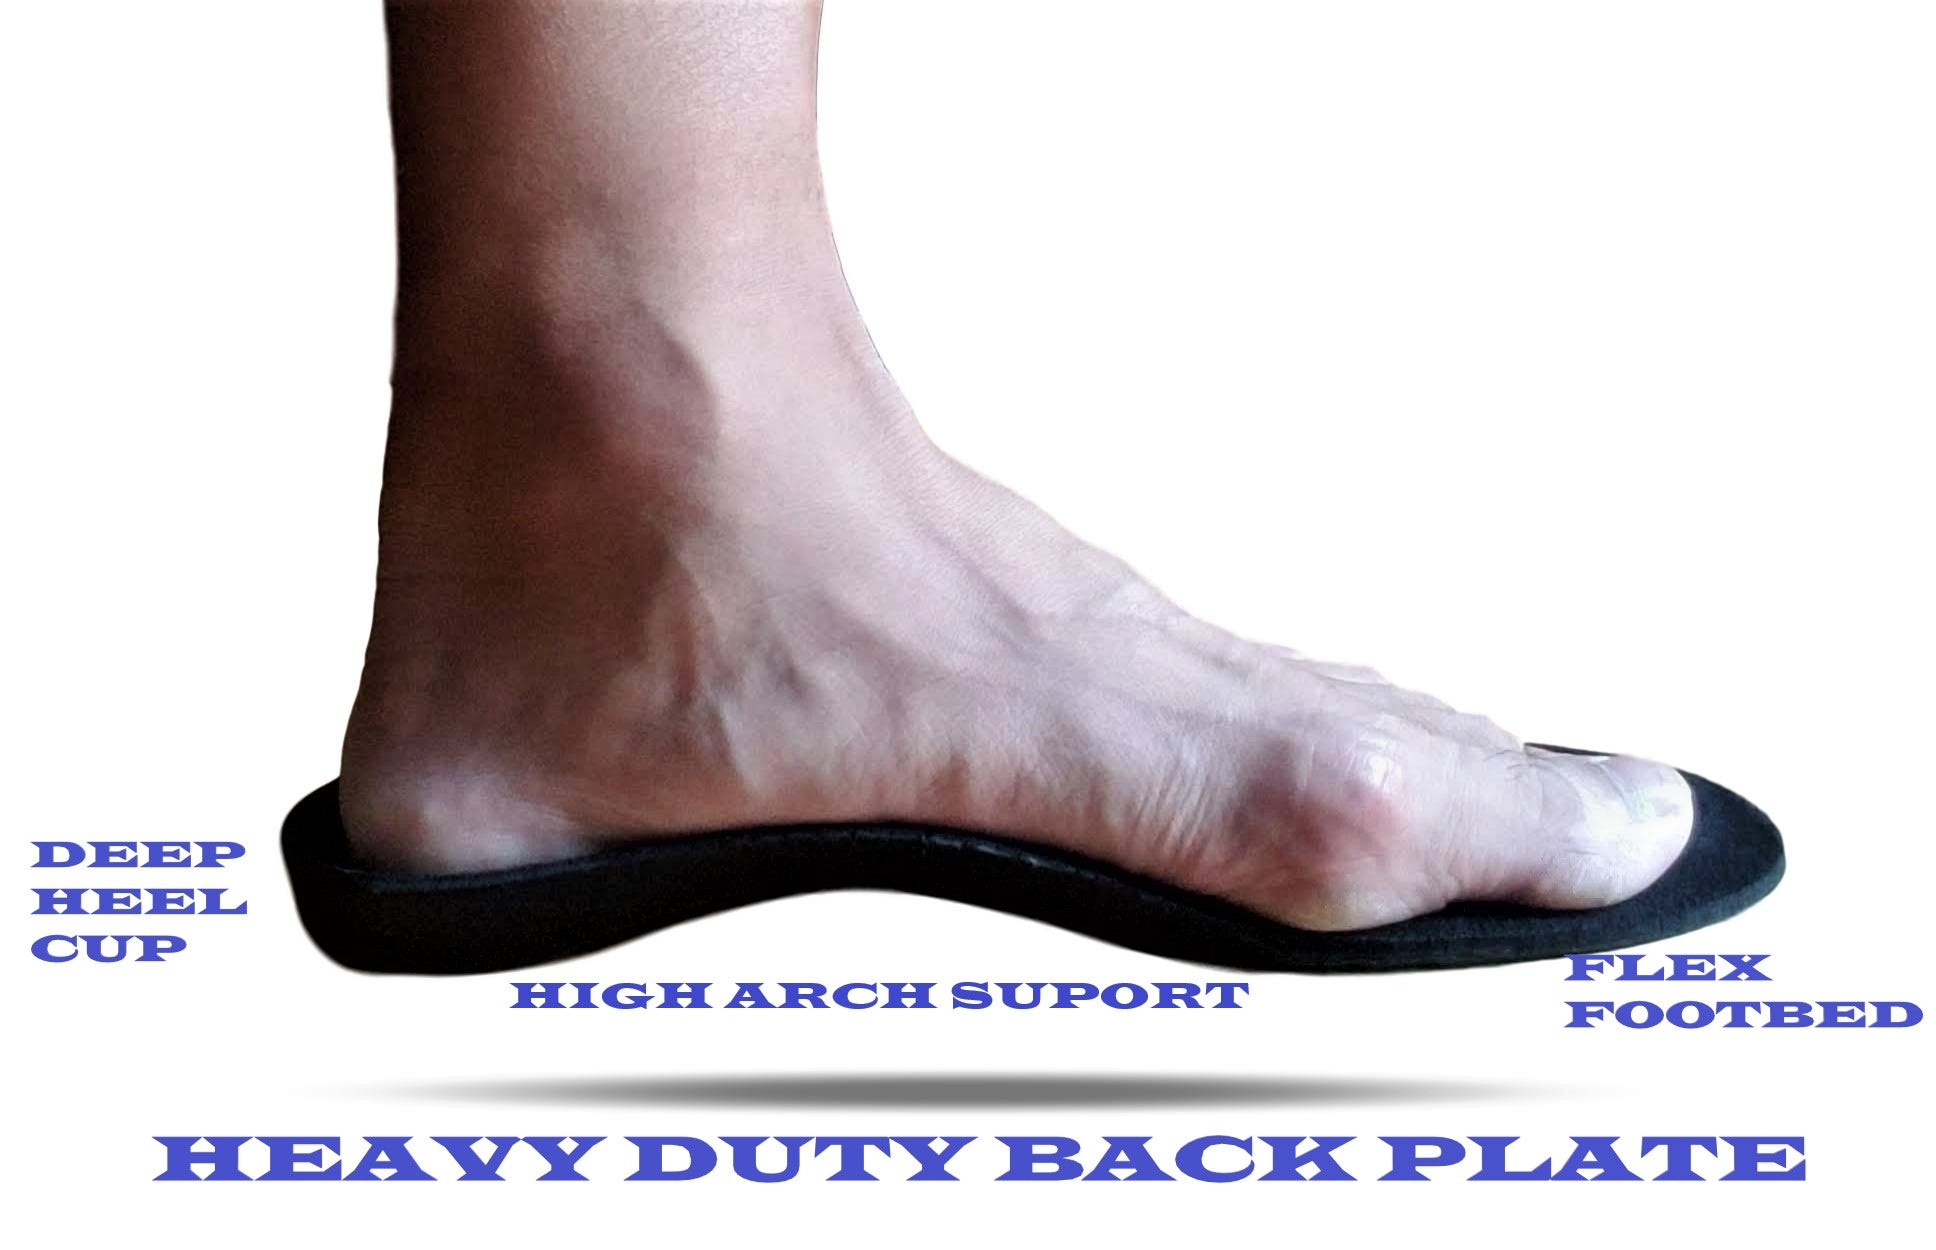 Heavy Duty Arch Support Flat Feet Orthotic Orthopedic Inserts Insoles on Shoes Sneakers Work Boots